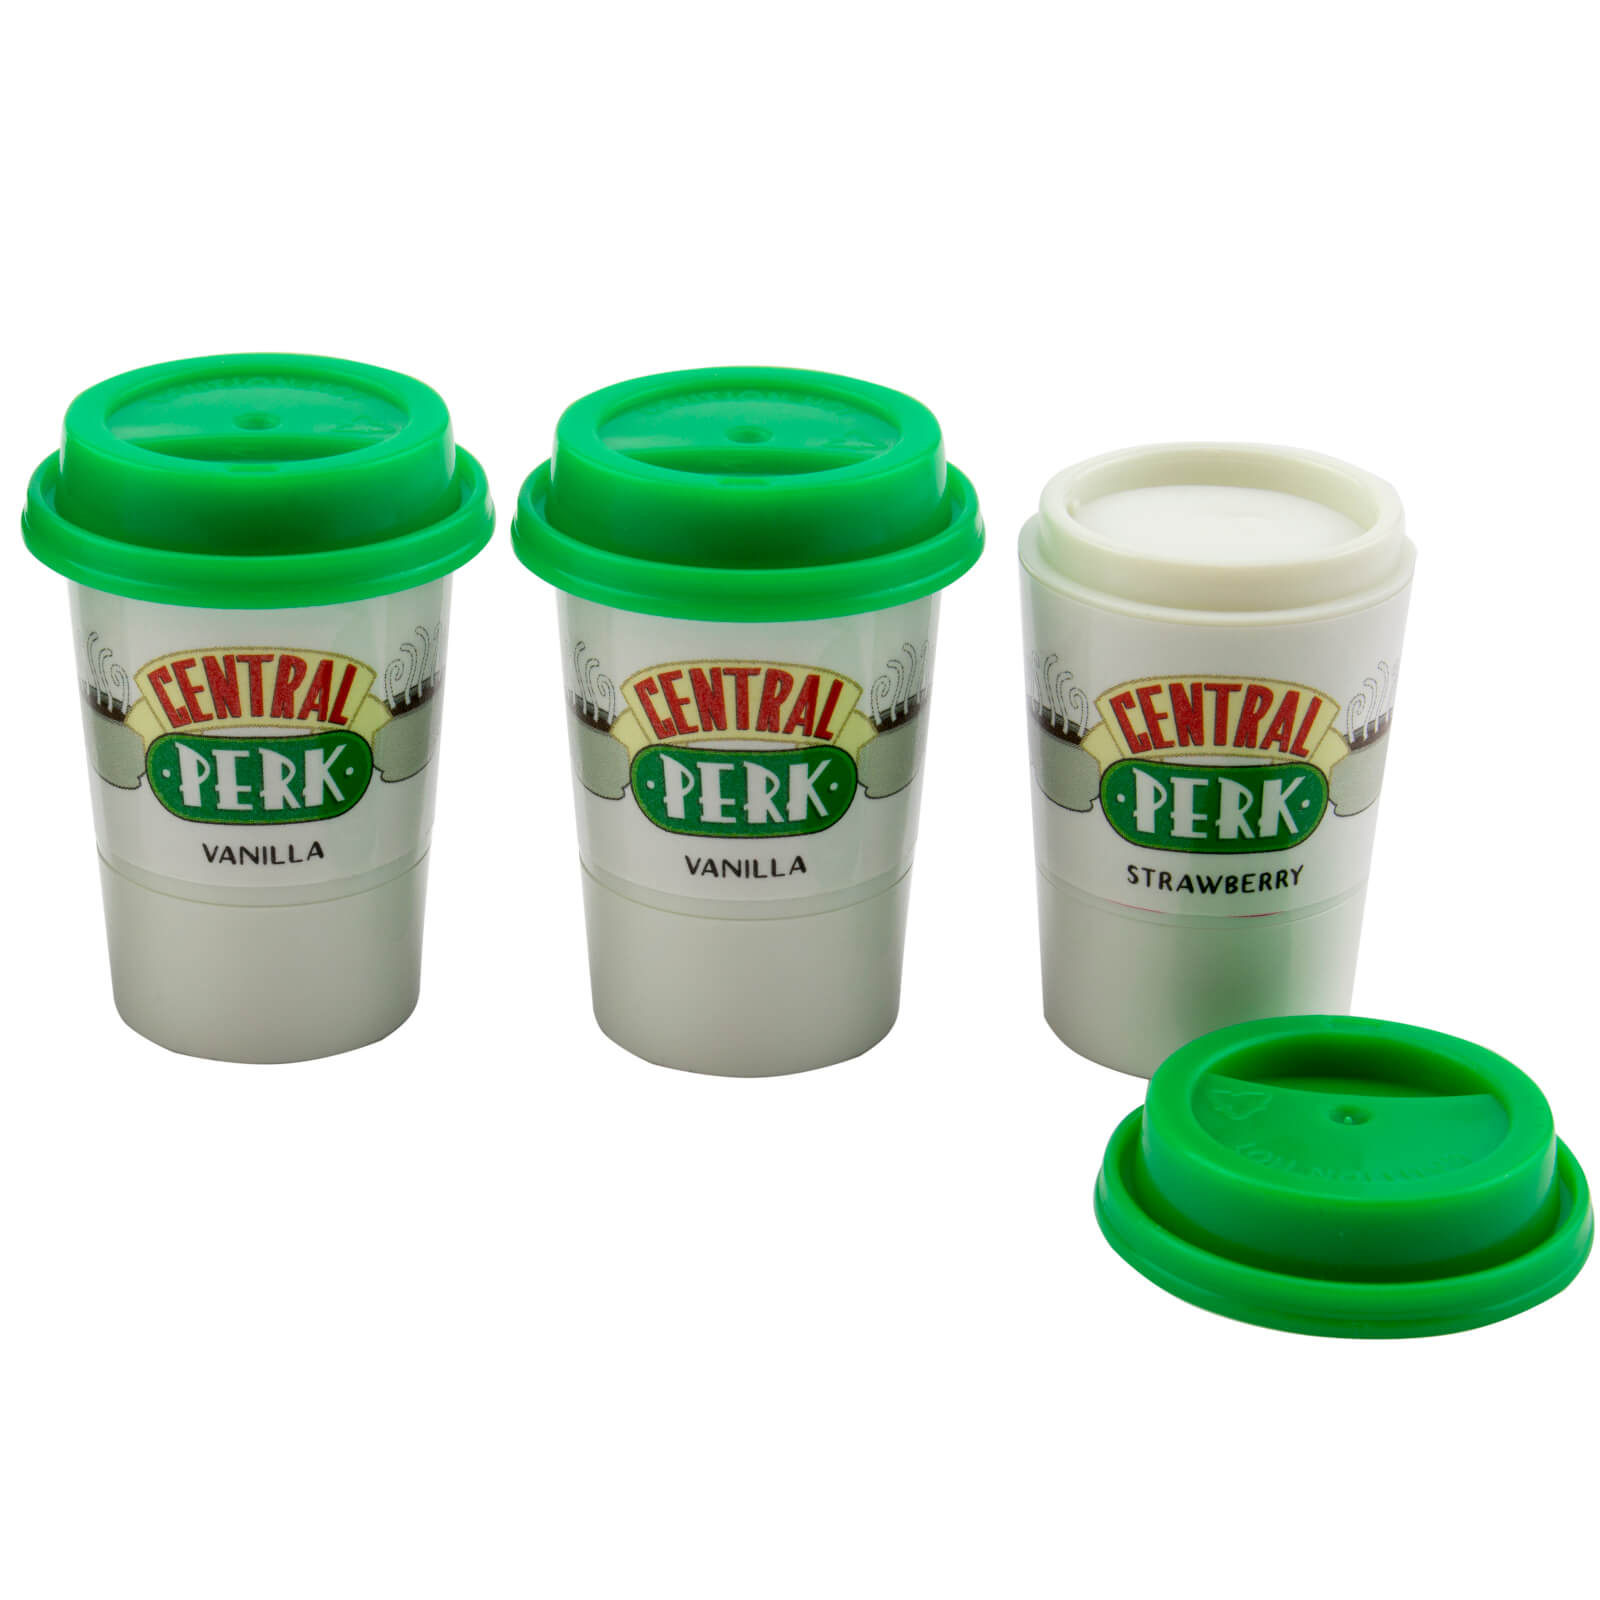 Image of Friends Central Perk Lip Balm Set of 3